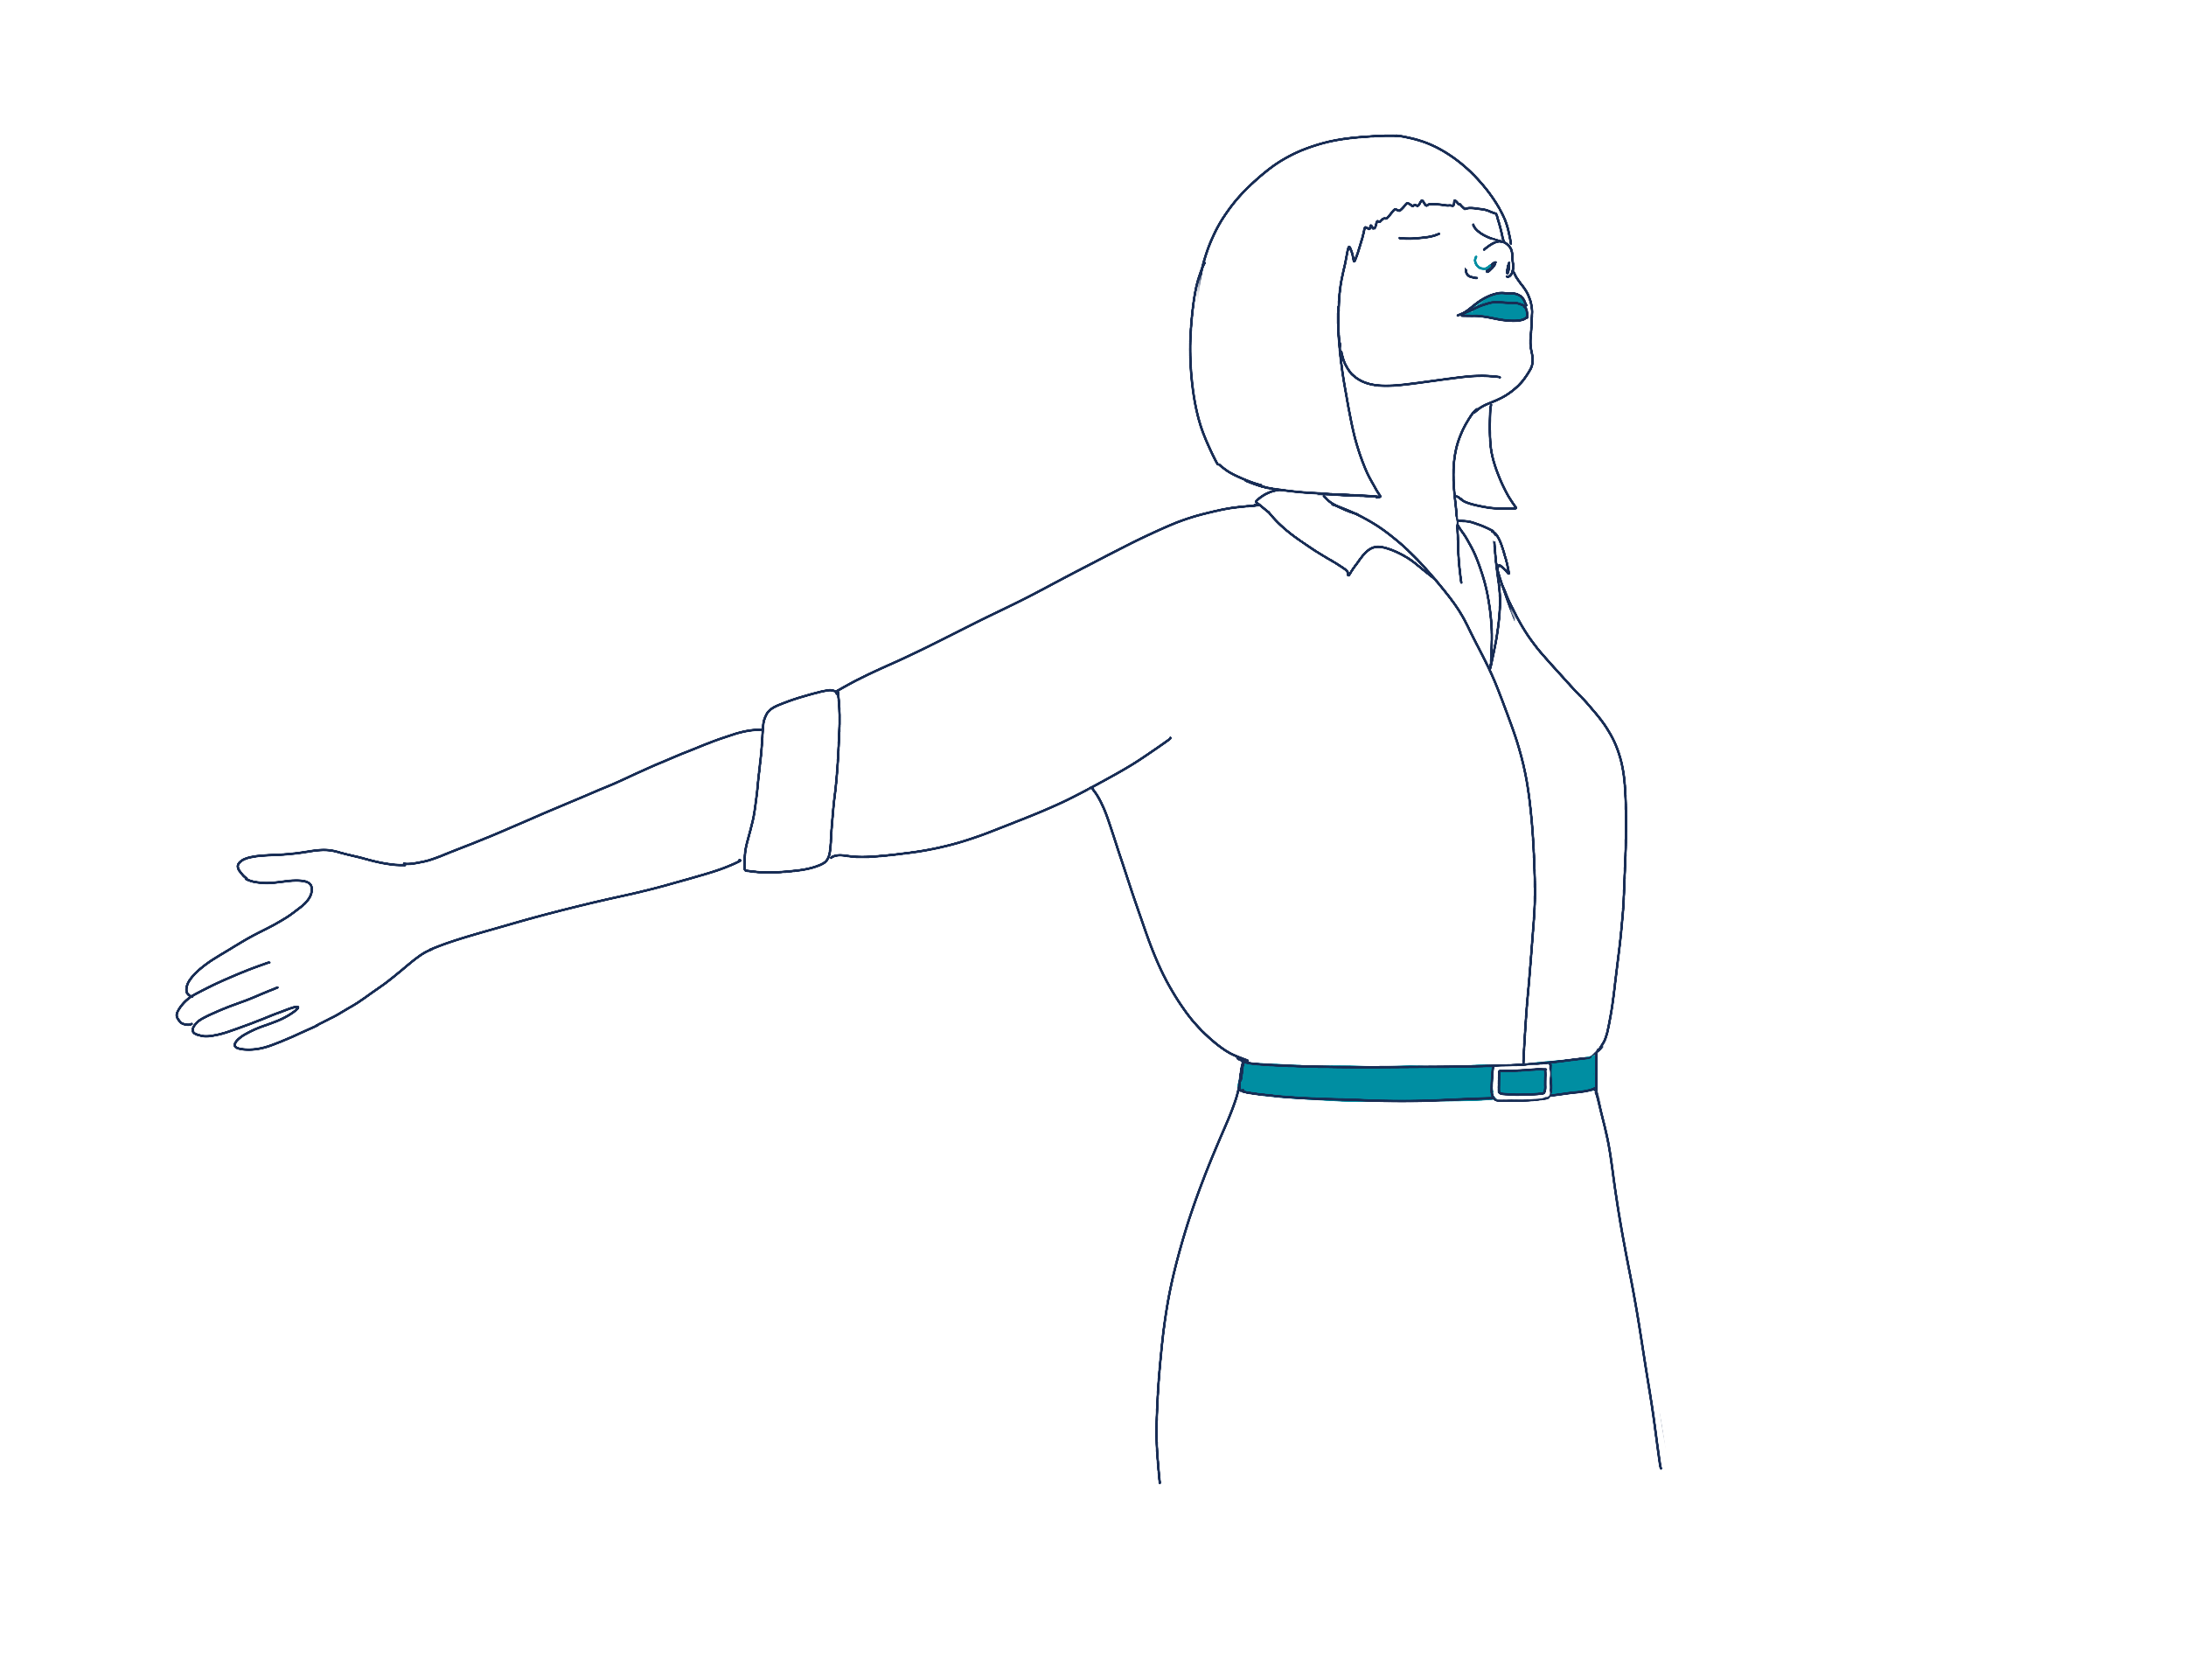 woman with arms out